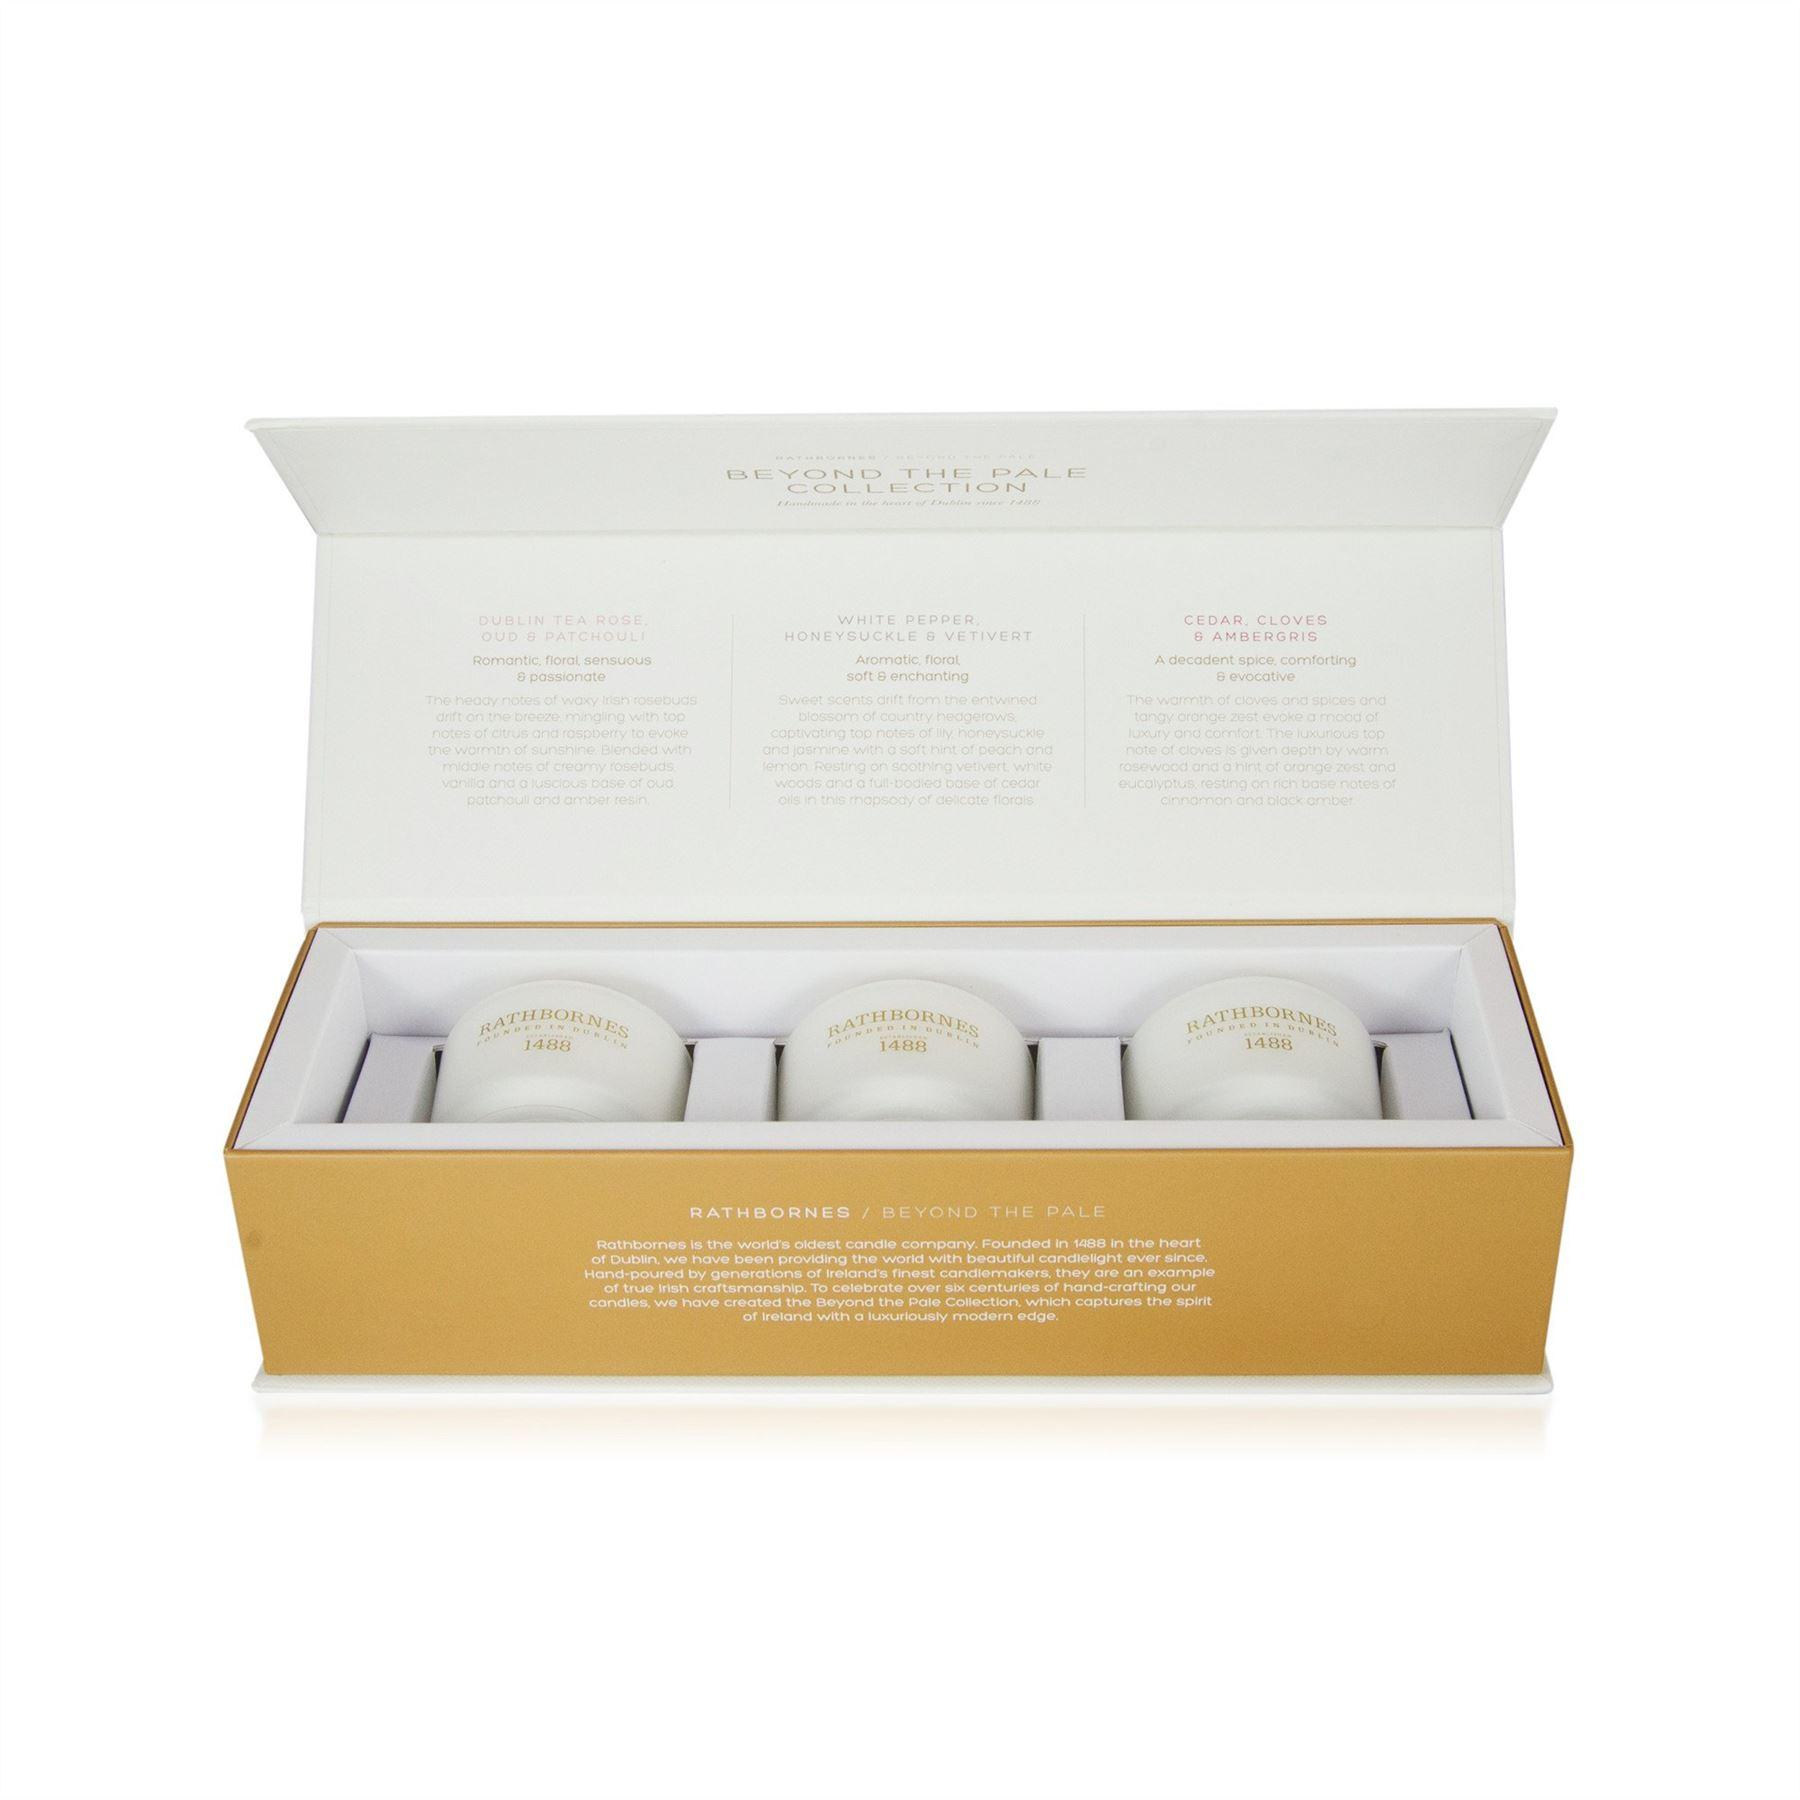 Rathbornes 1488 Travel Candle Gift Set